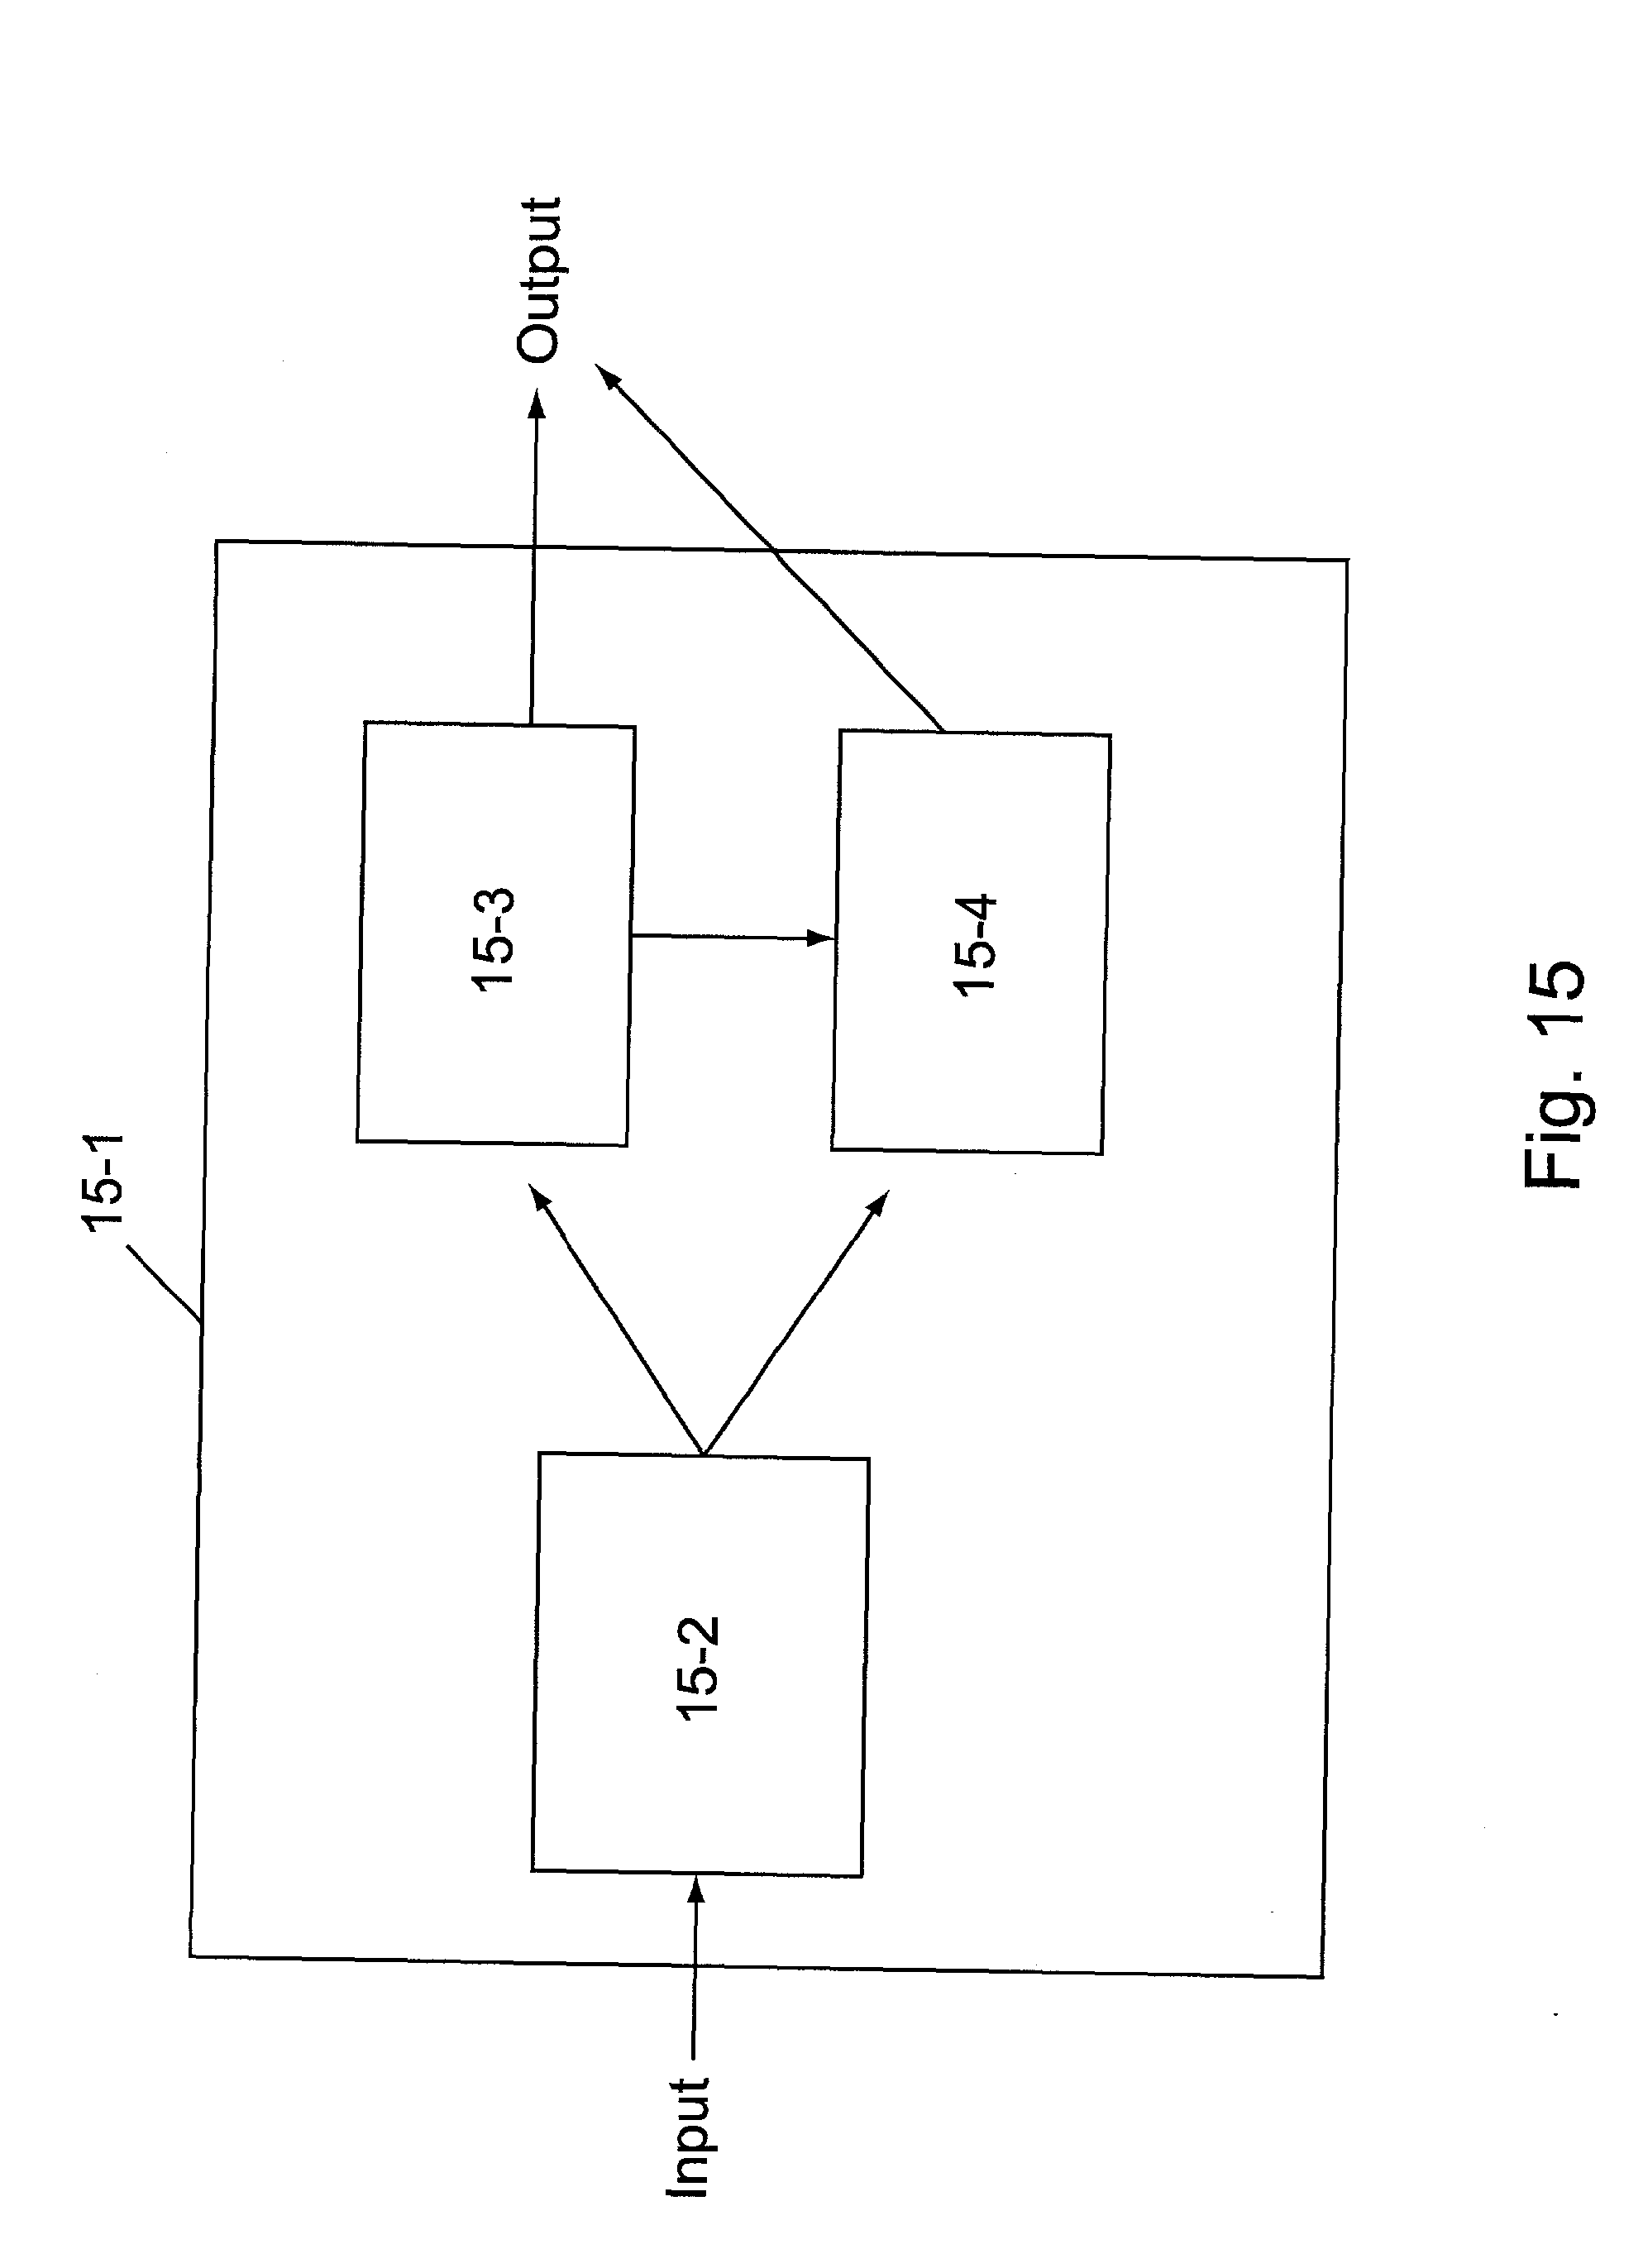 Initializing Two-Dimensional Arrays